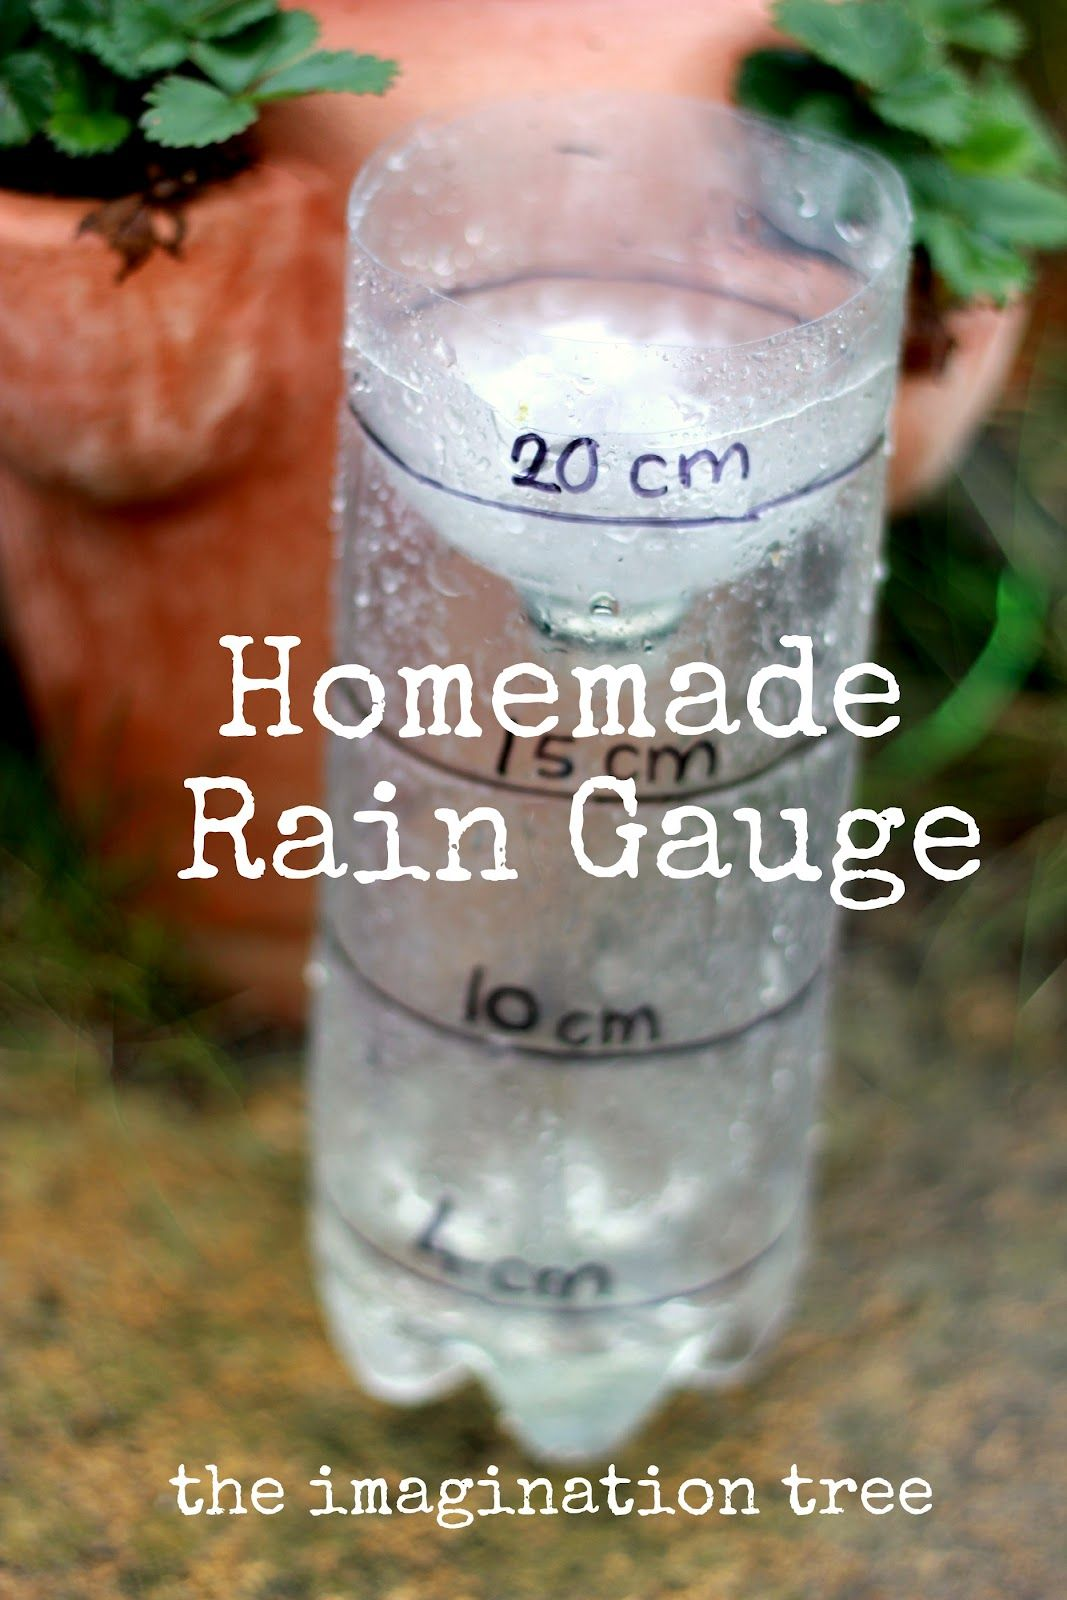 Homemade Rain Gauge